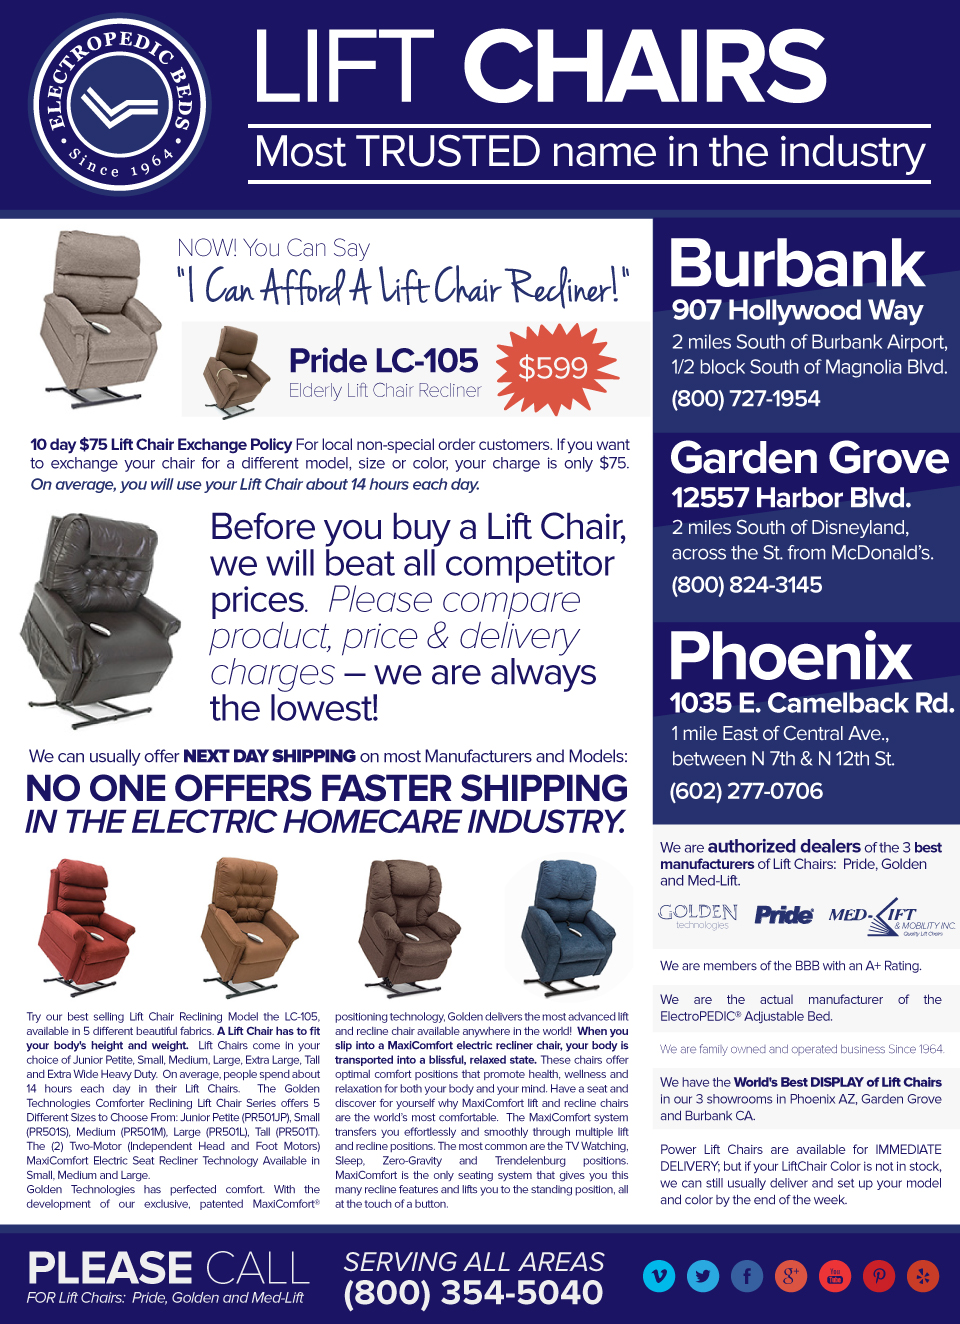 Phoenix affordable liftchair recliner store